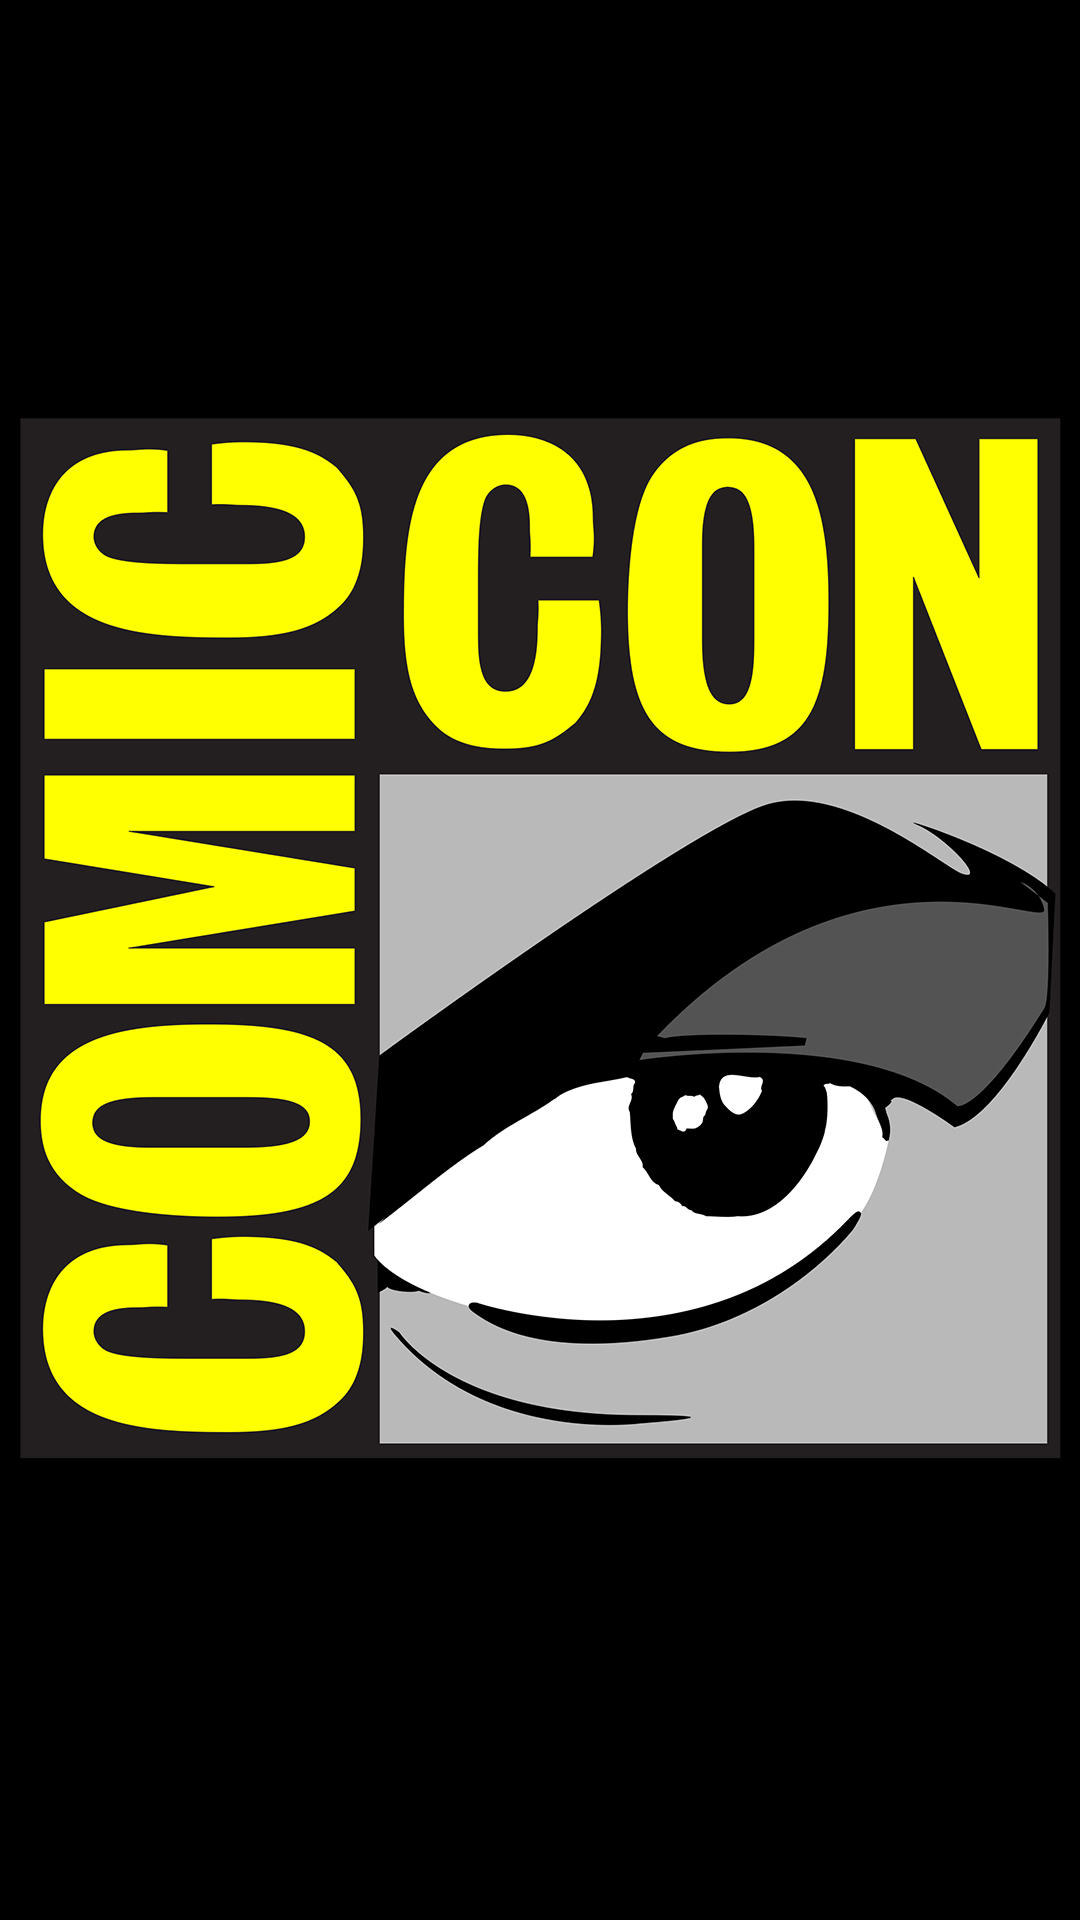 How To Change Wallpaper On Iphone 5 Comic Con Hd Wallpaper For Your Iphone 6